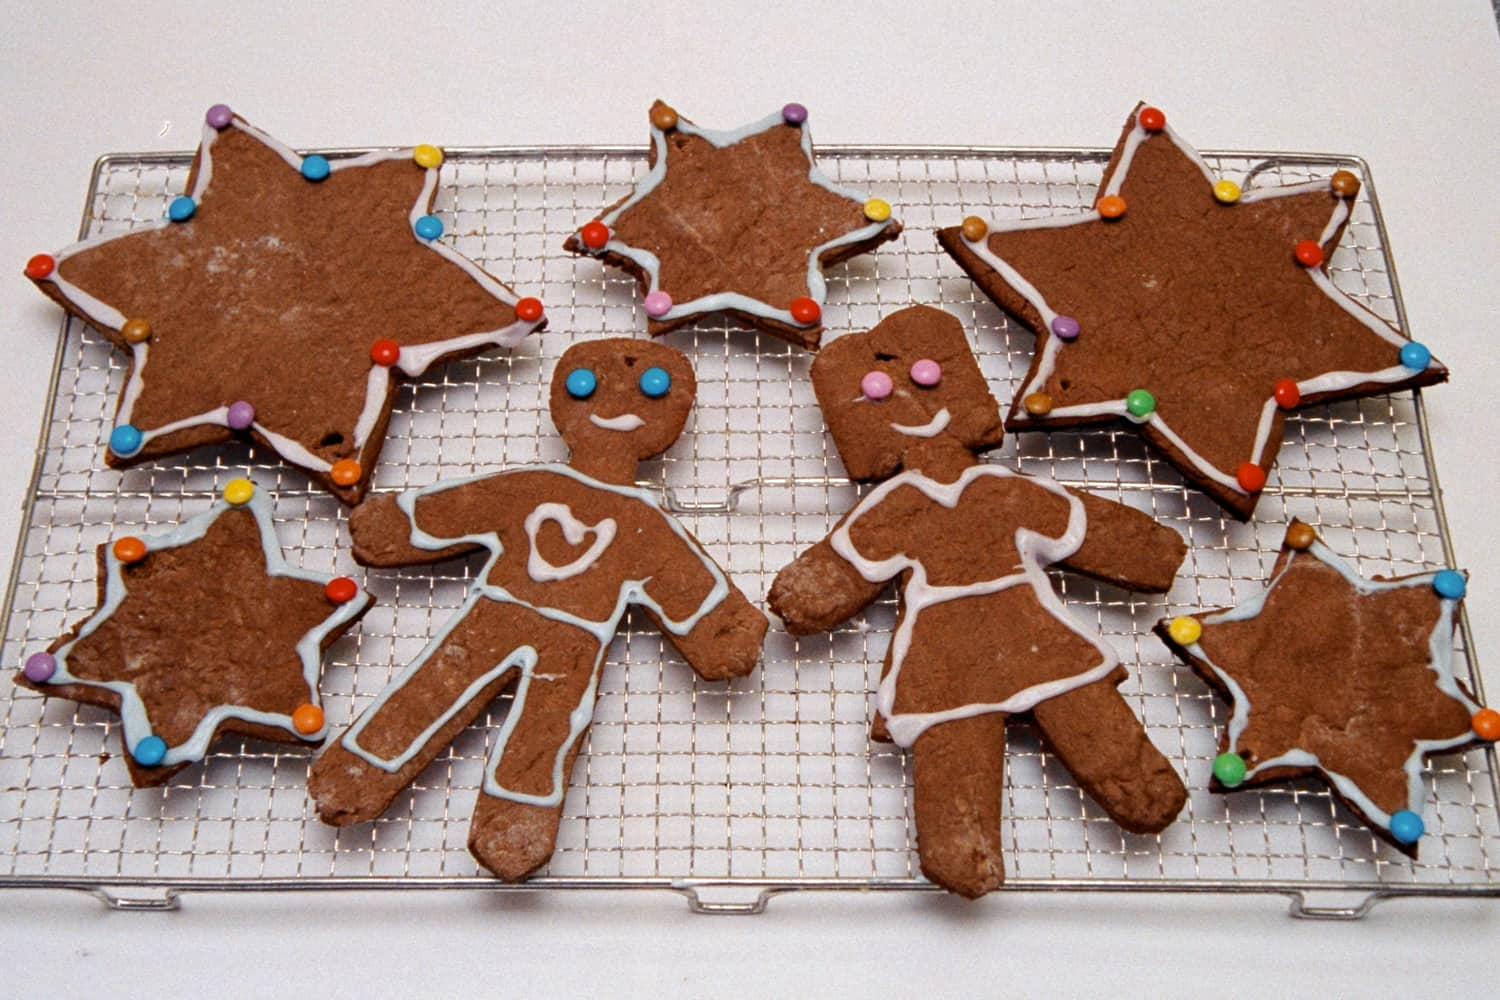 Gingerbread cut into Christmas shapes.